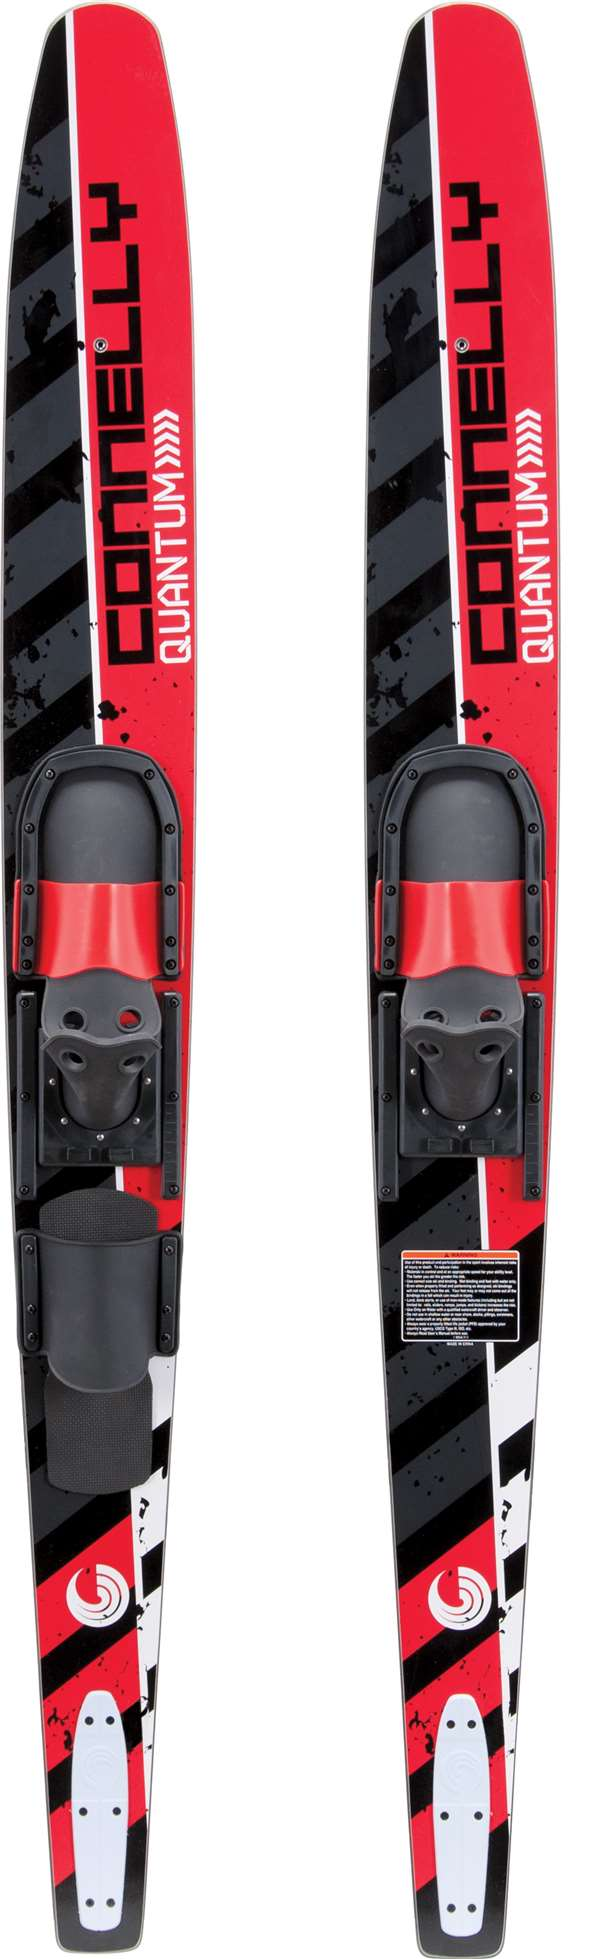 Quantum Slide Adjustable Bindings Connelly Combo Water Skis by Connelly